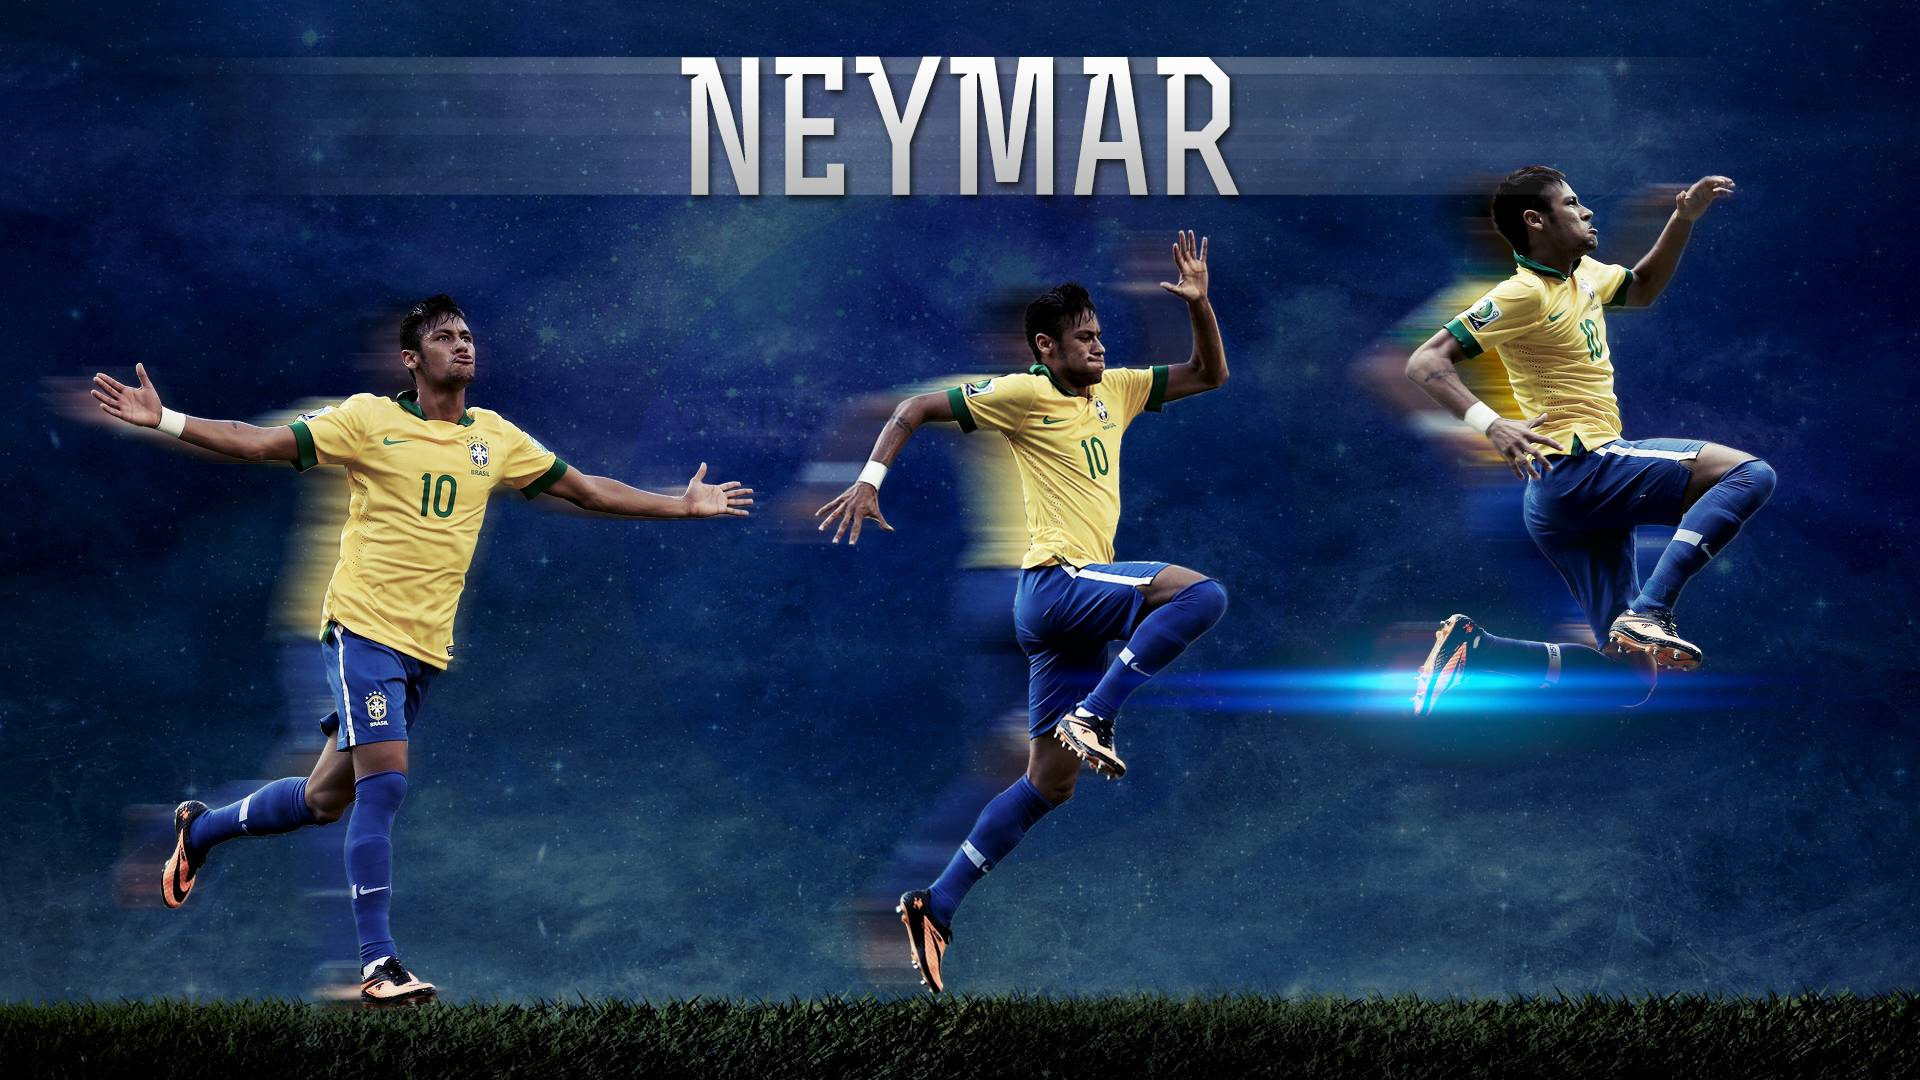 Neymar Jr Wallpapers